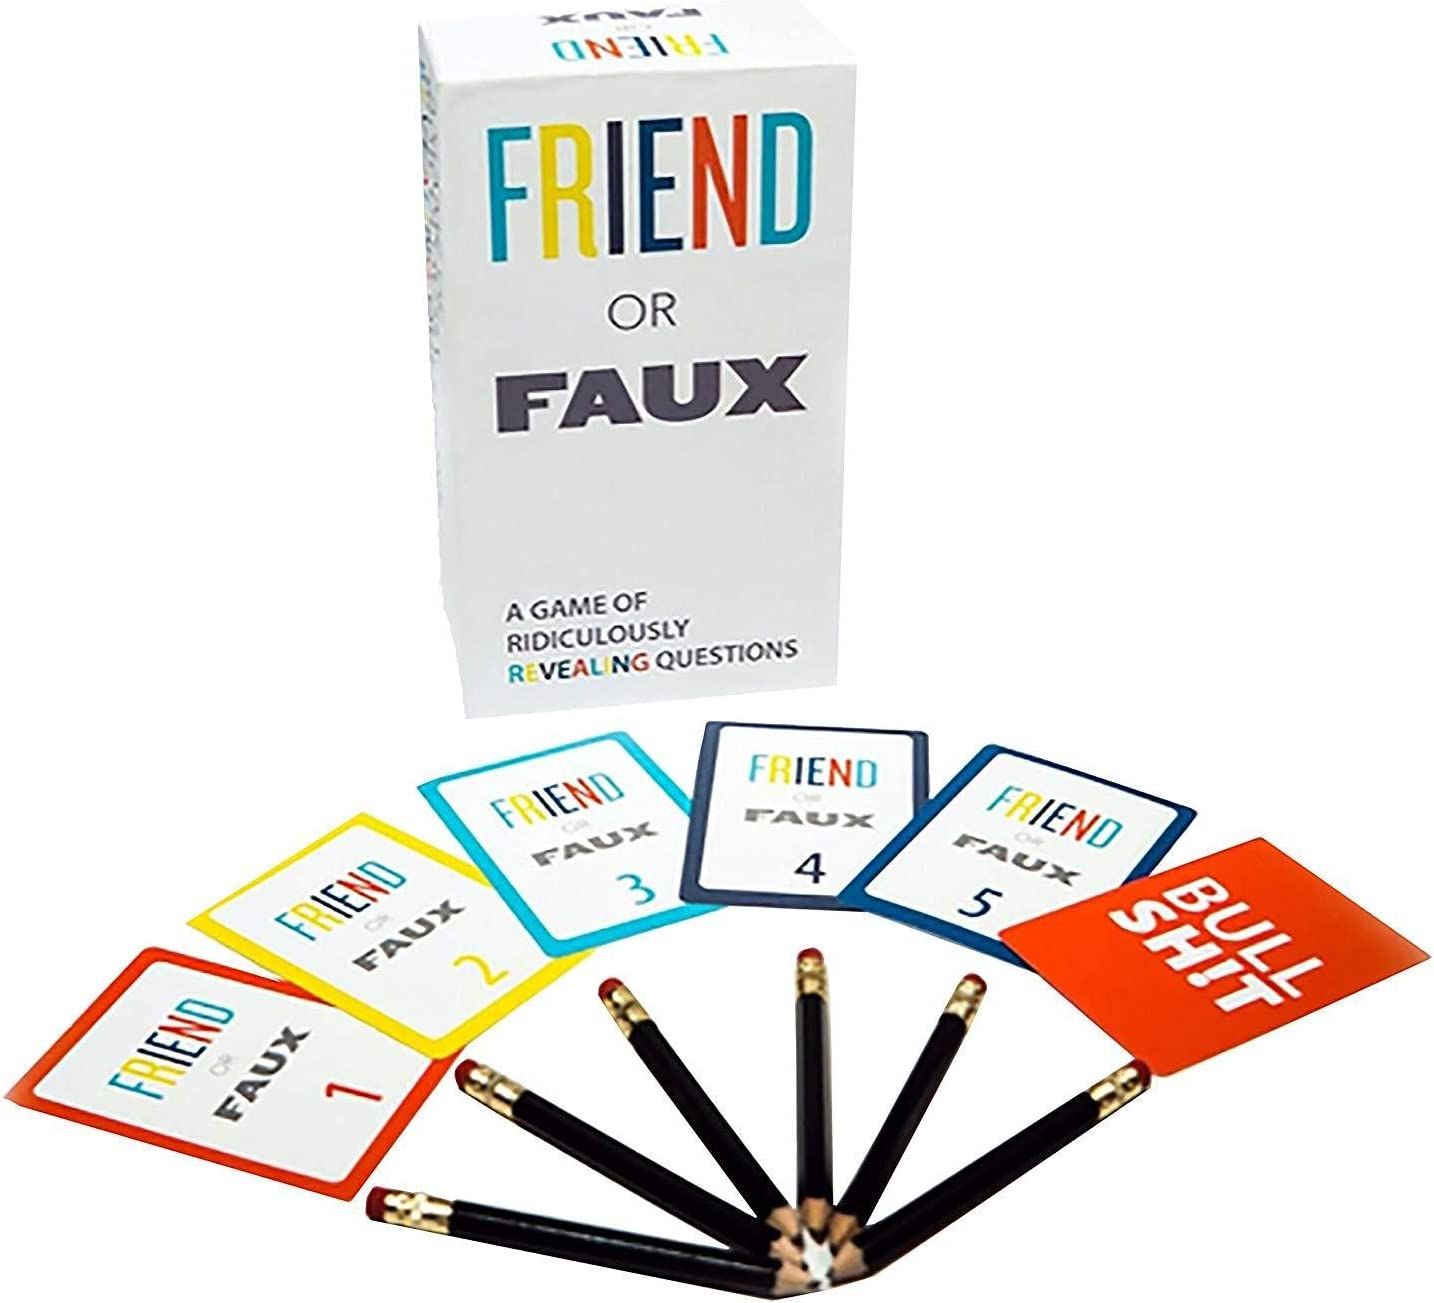 Games Adults Play Friend or Faux: A Game of Ridiculously Revealing Questions by, Multicolor